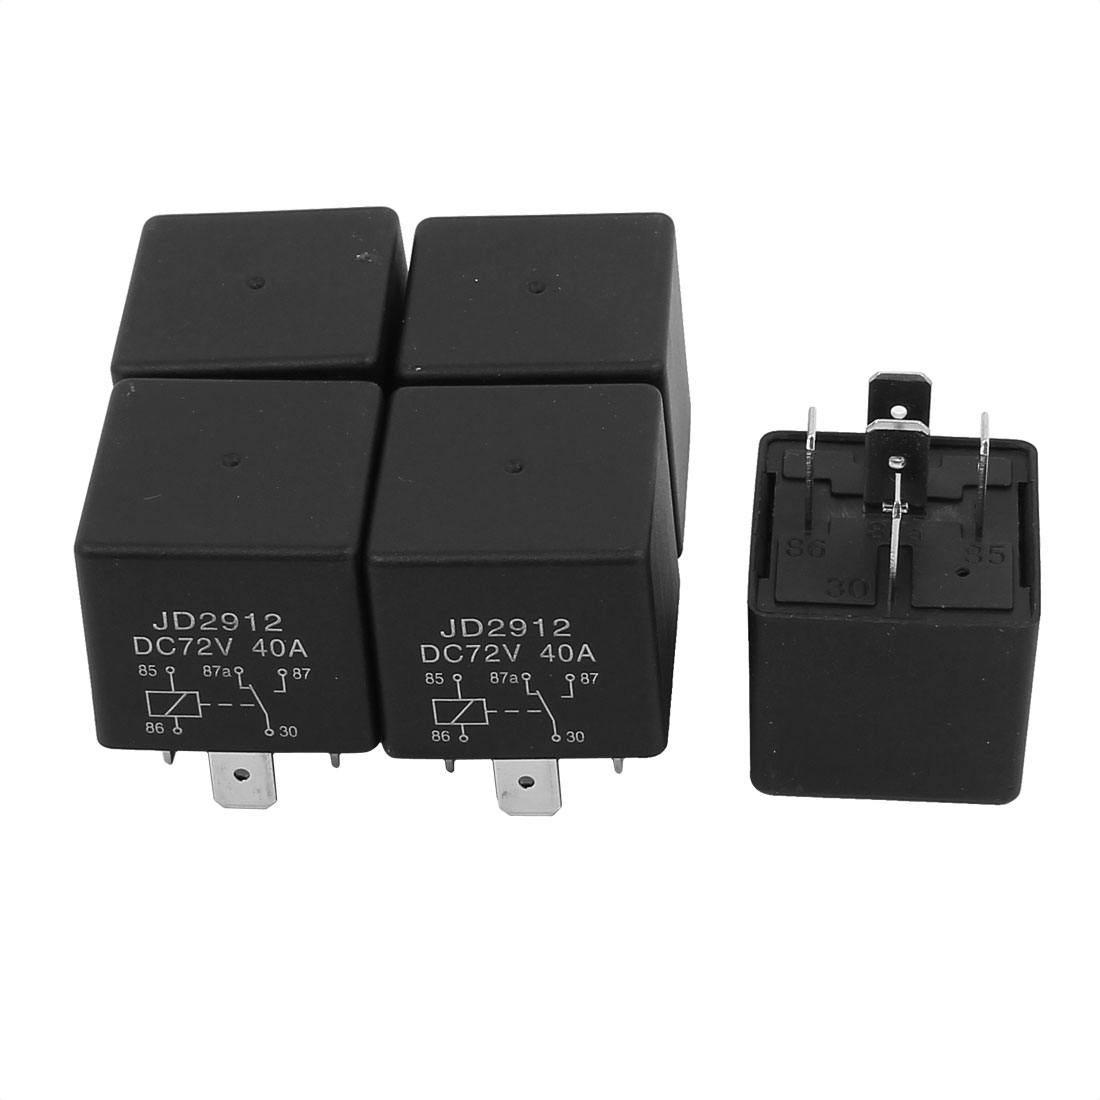 JD2912 DC 72V Coil 40A 5 Pins SPDT Vehicle Car Security Power Relay 5pcs